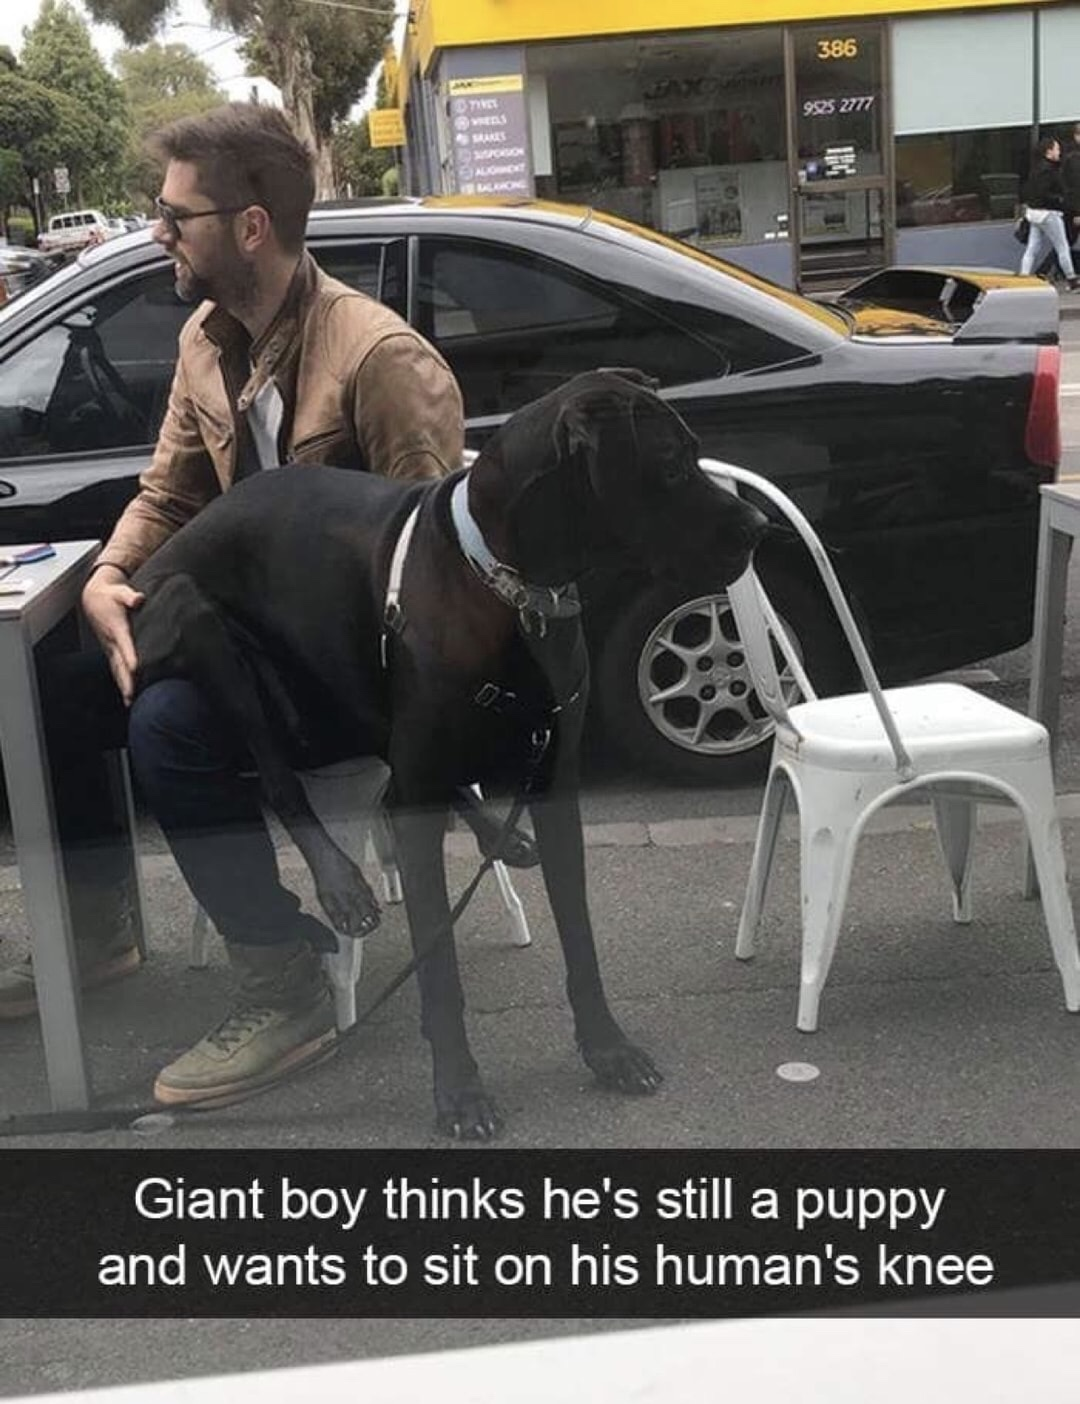 Giant boy thinks he's still a puppy and wants to sit on his human's knee